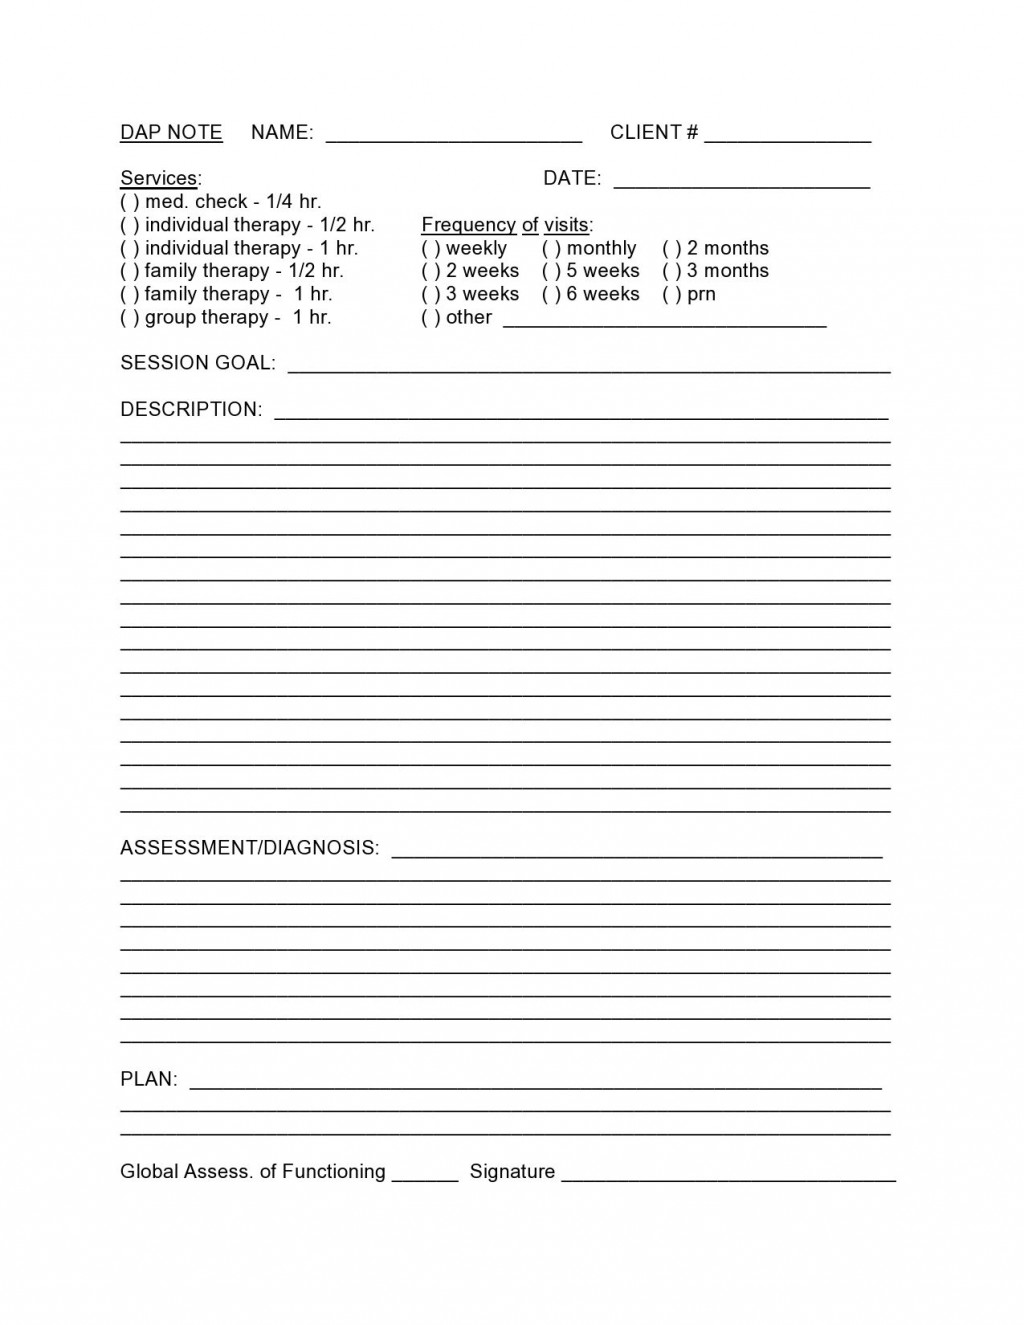 005 Top Group Psychotherapy Progres Note Template Idea Large